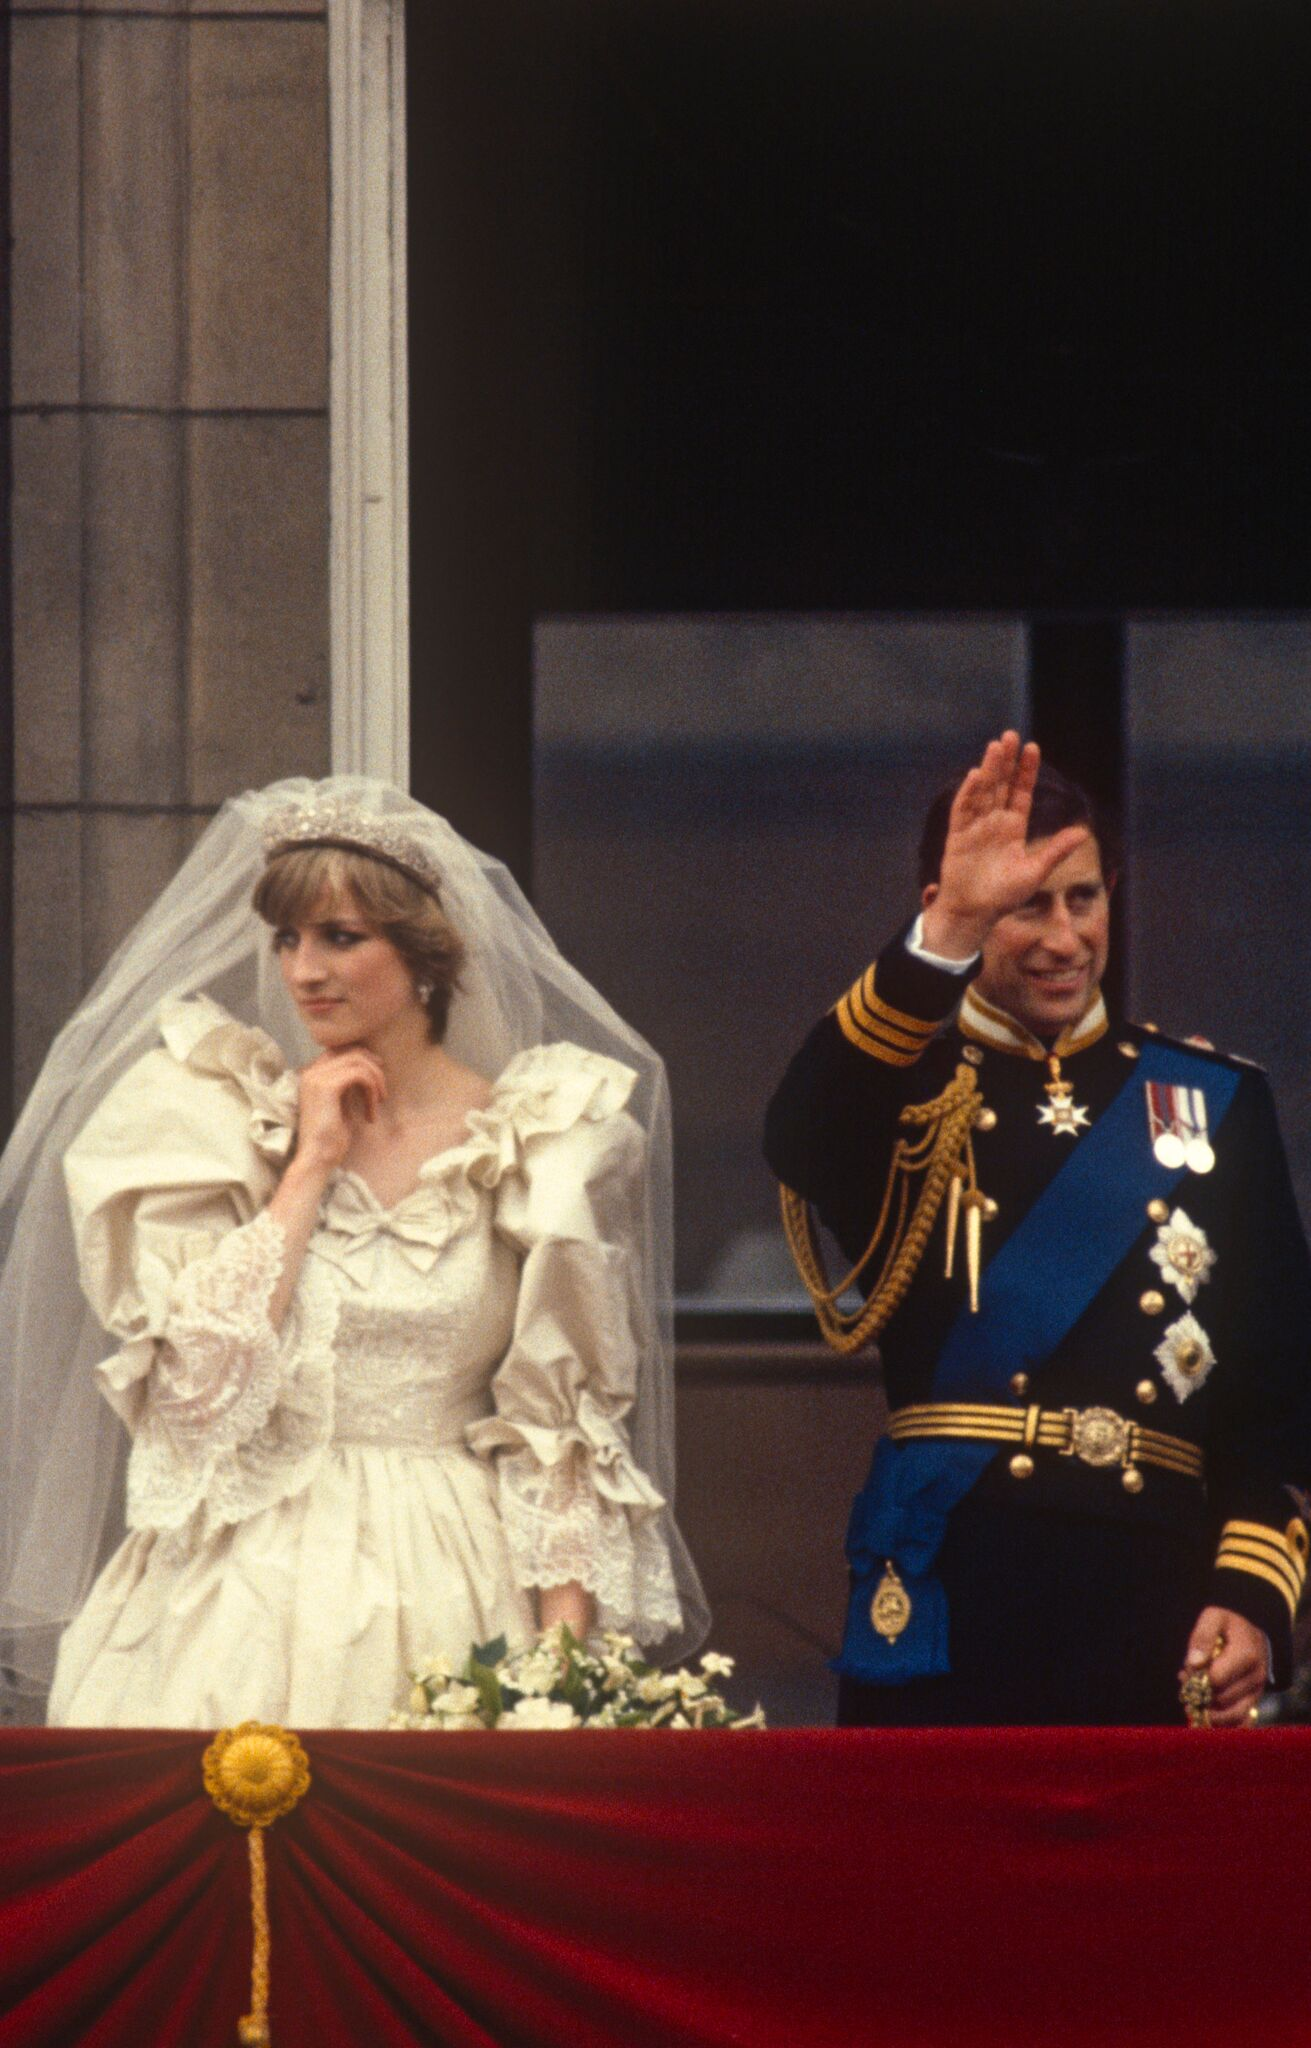 Princess Diana and Prince Charles on the palace balcony on their wedding day | Getty Images/ Global Images Ukraine